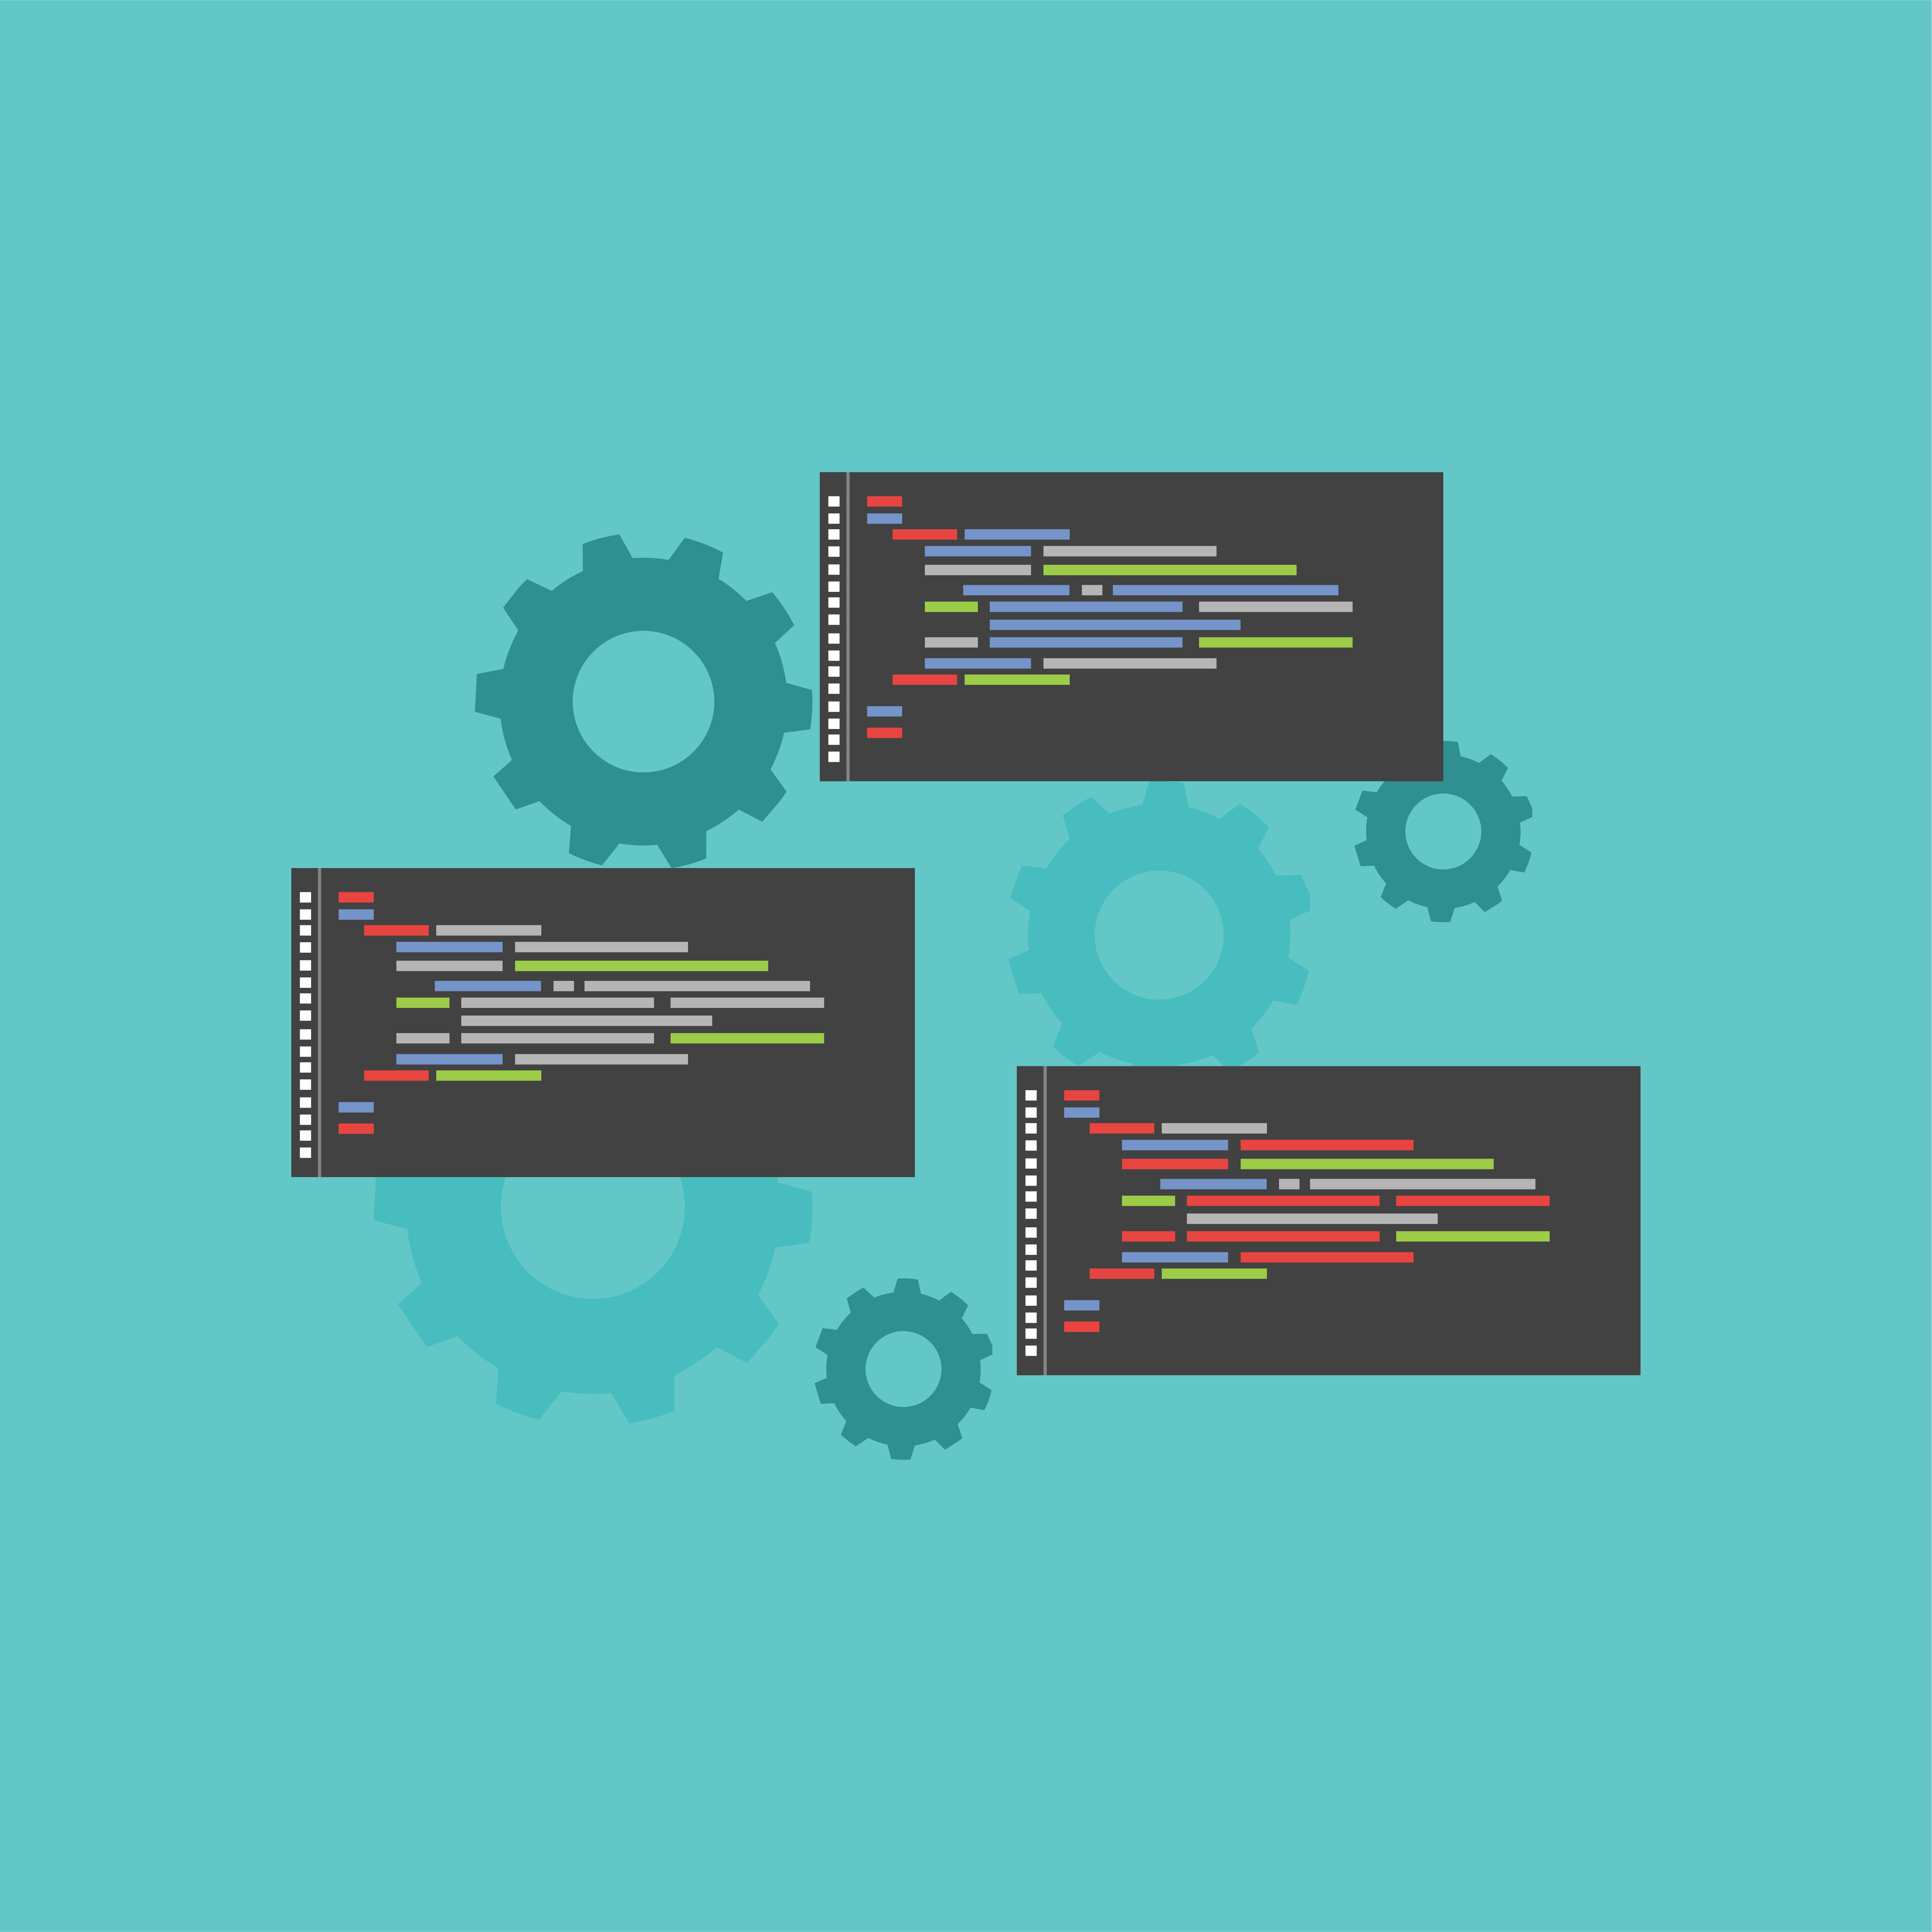 check the post:Embedded Software and Cybersecurity for a description of the image